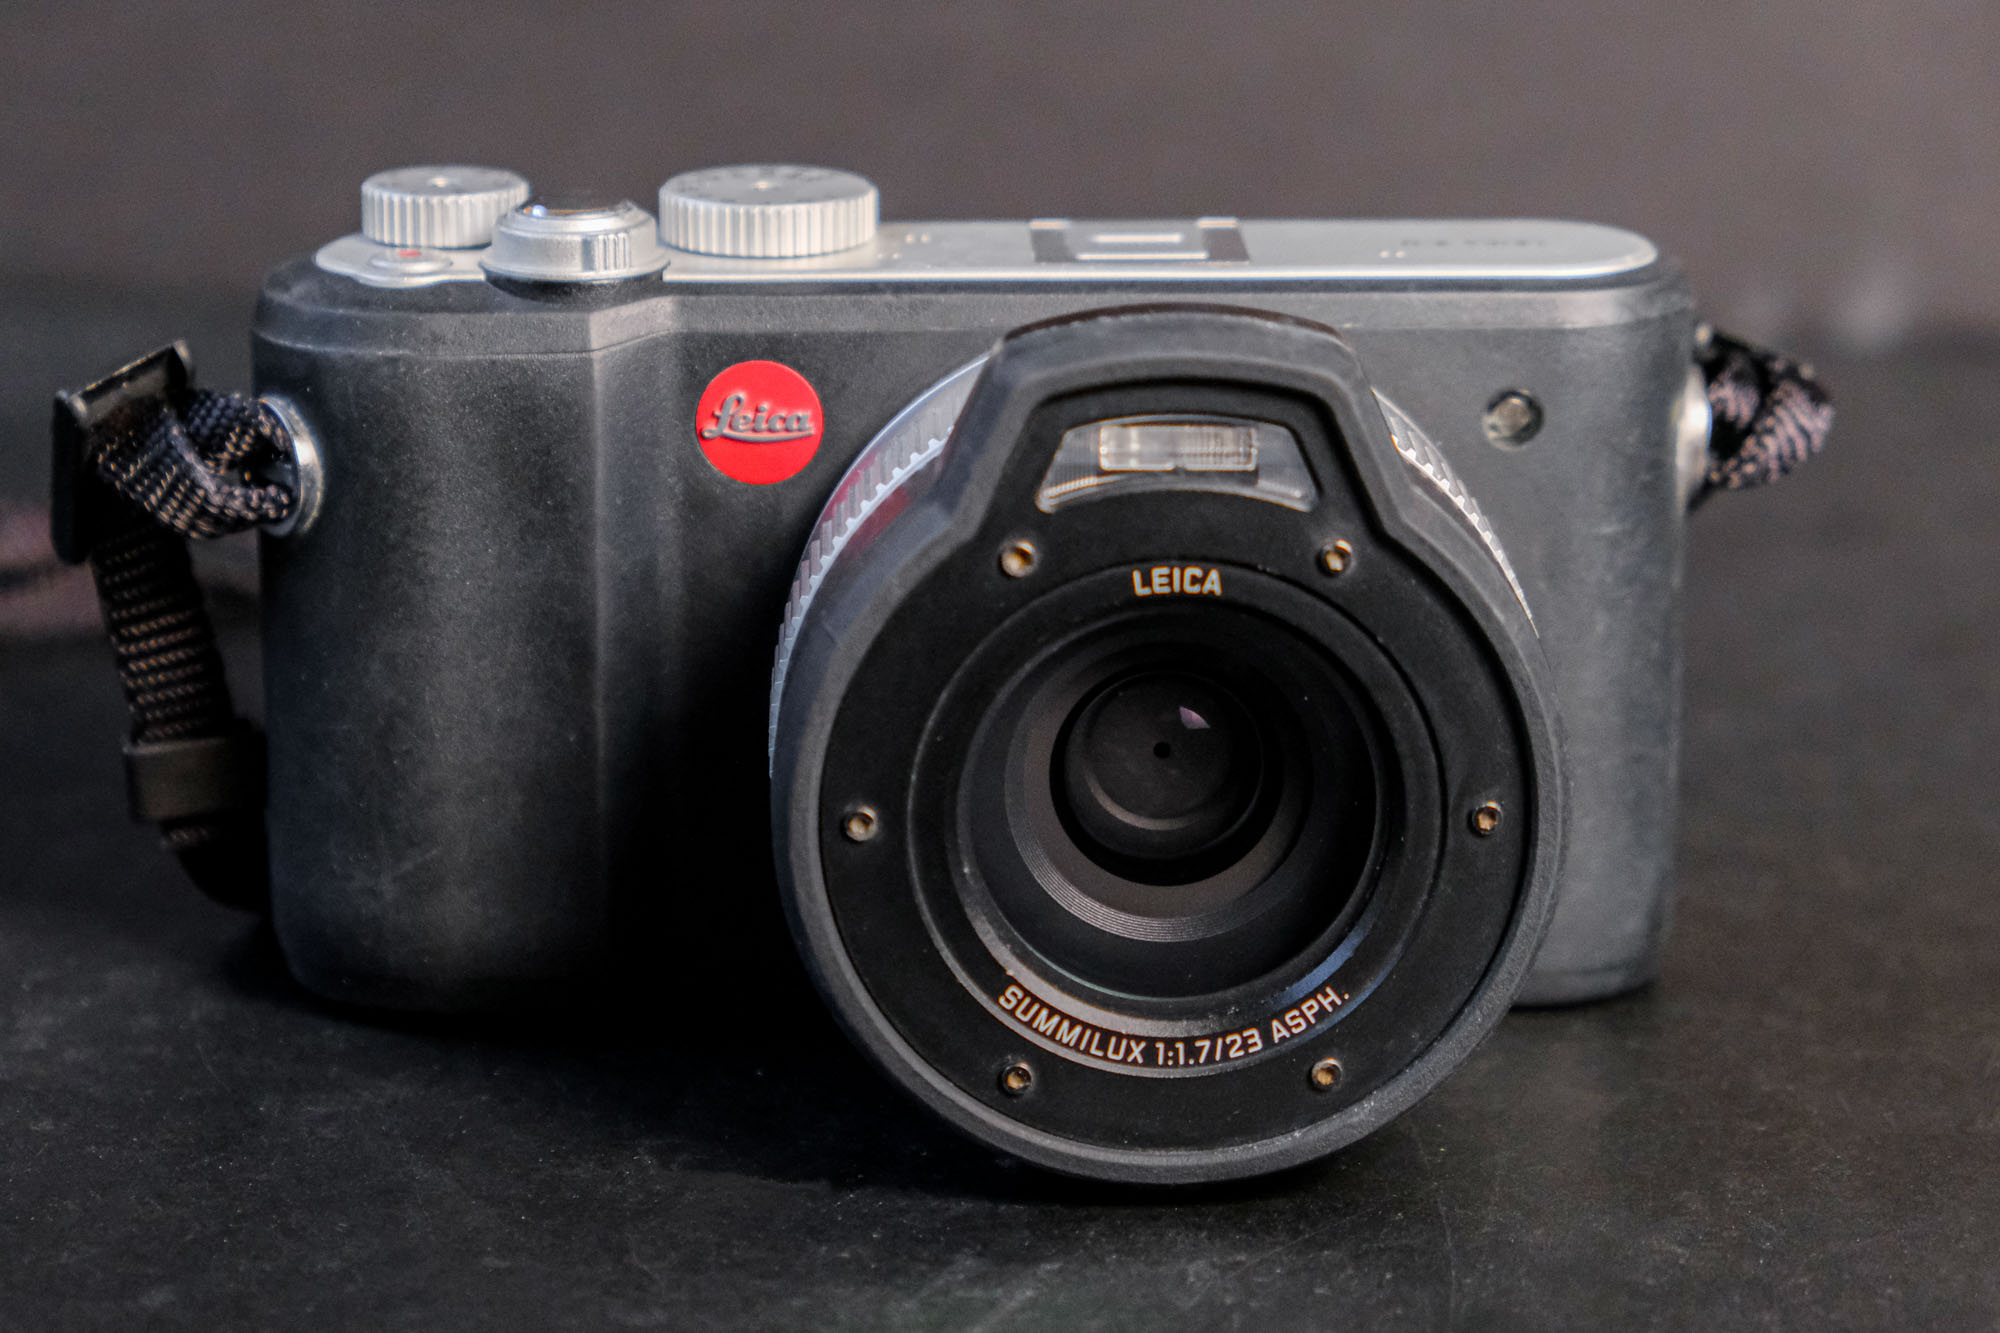 Leica XU underwater camera